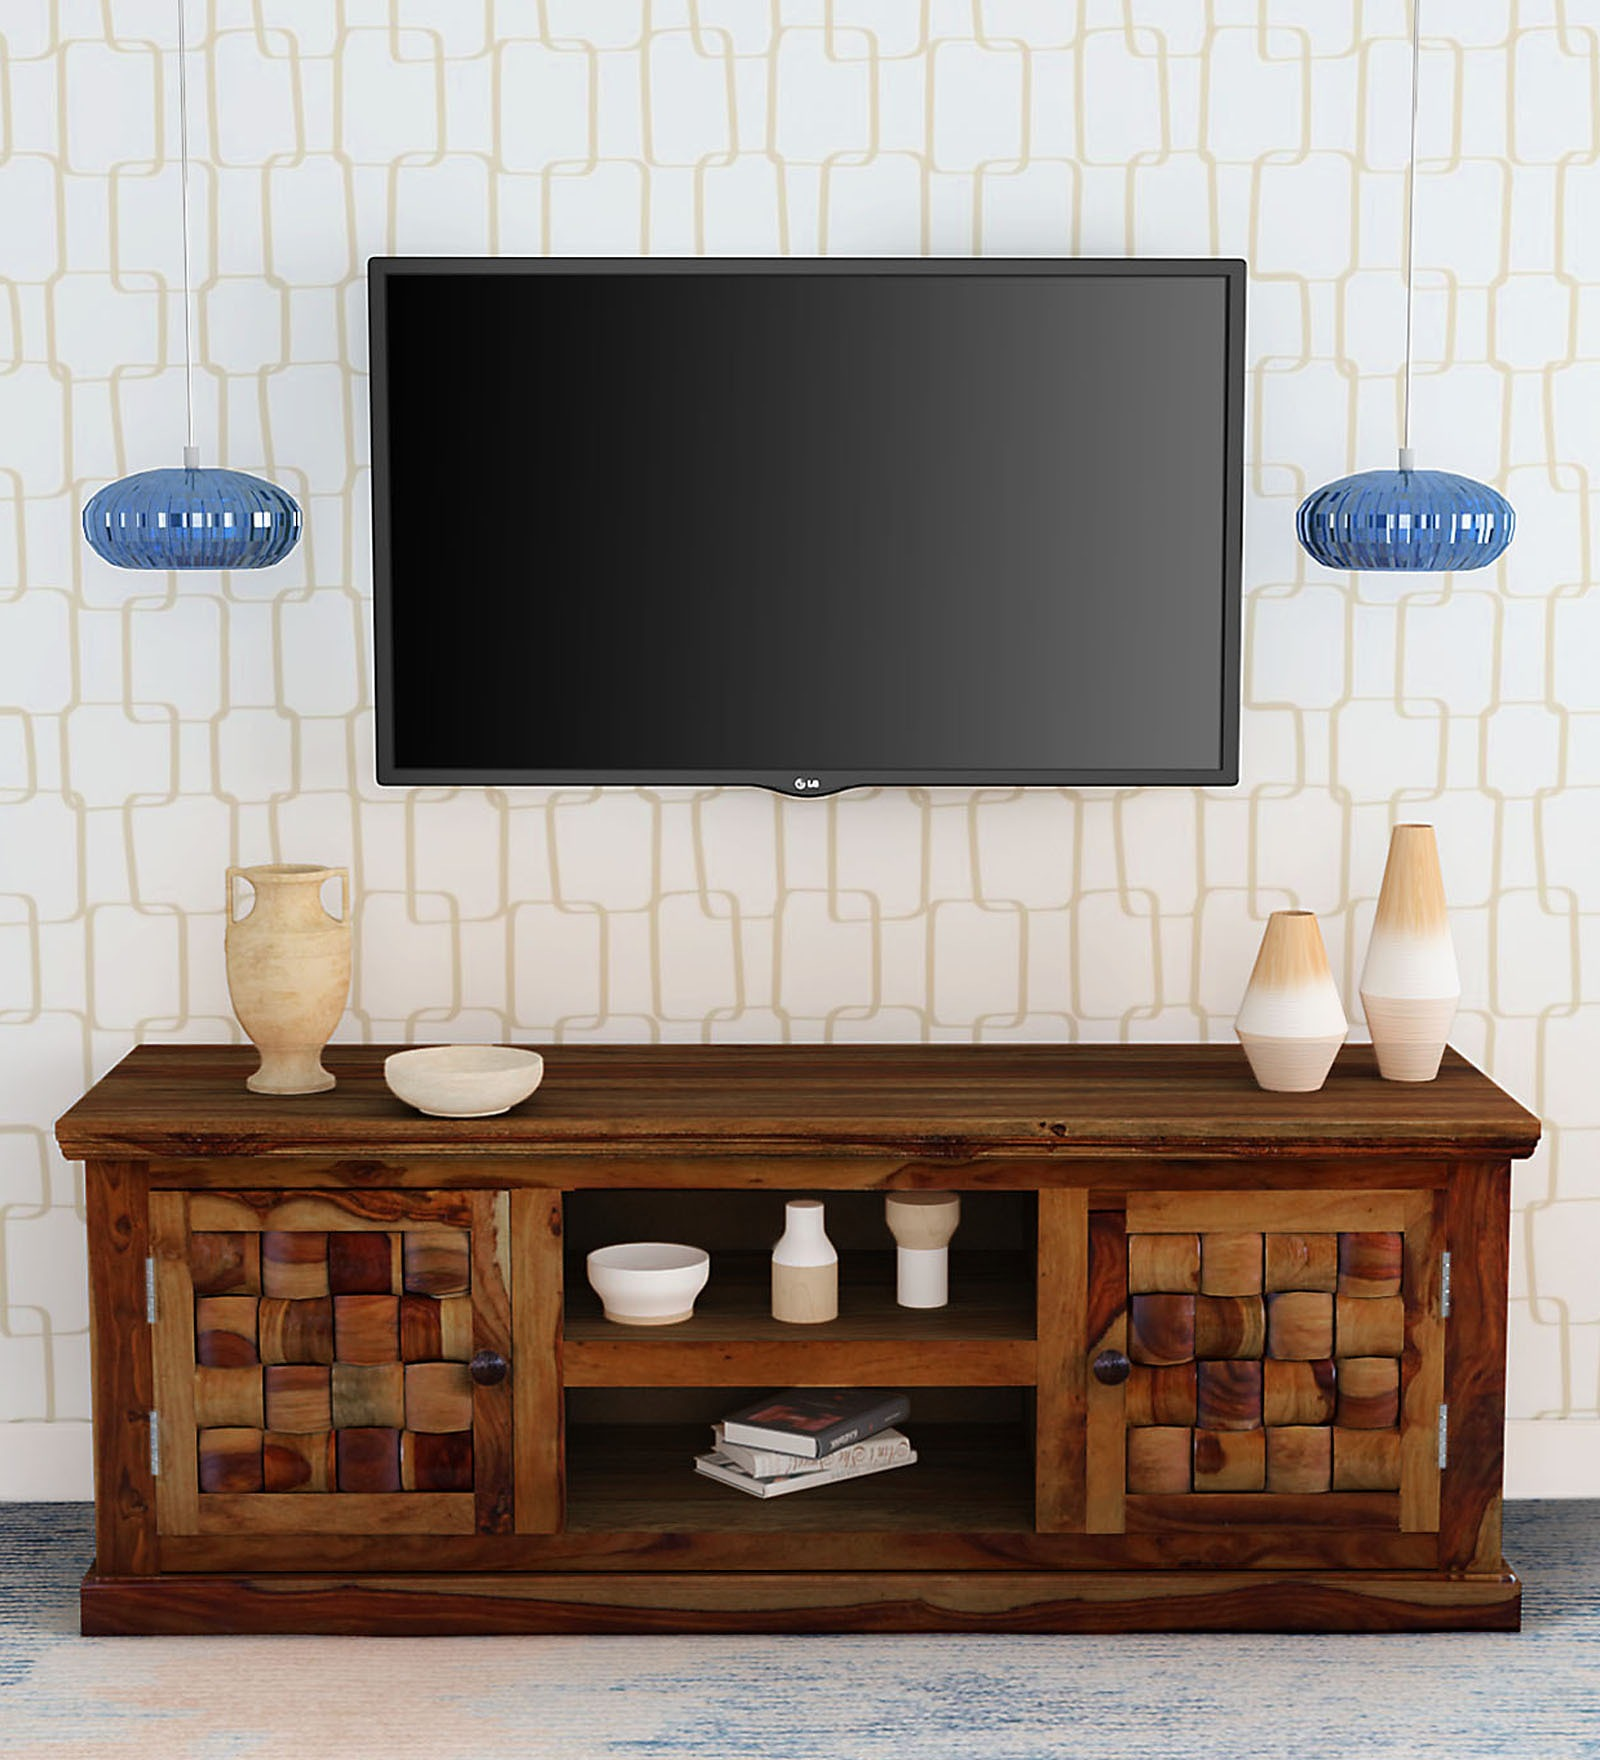 Niwar Design Solid Wood Tv Unit In Teak